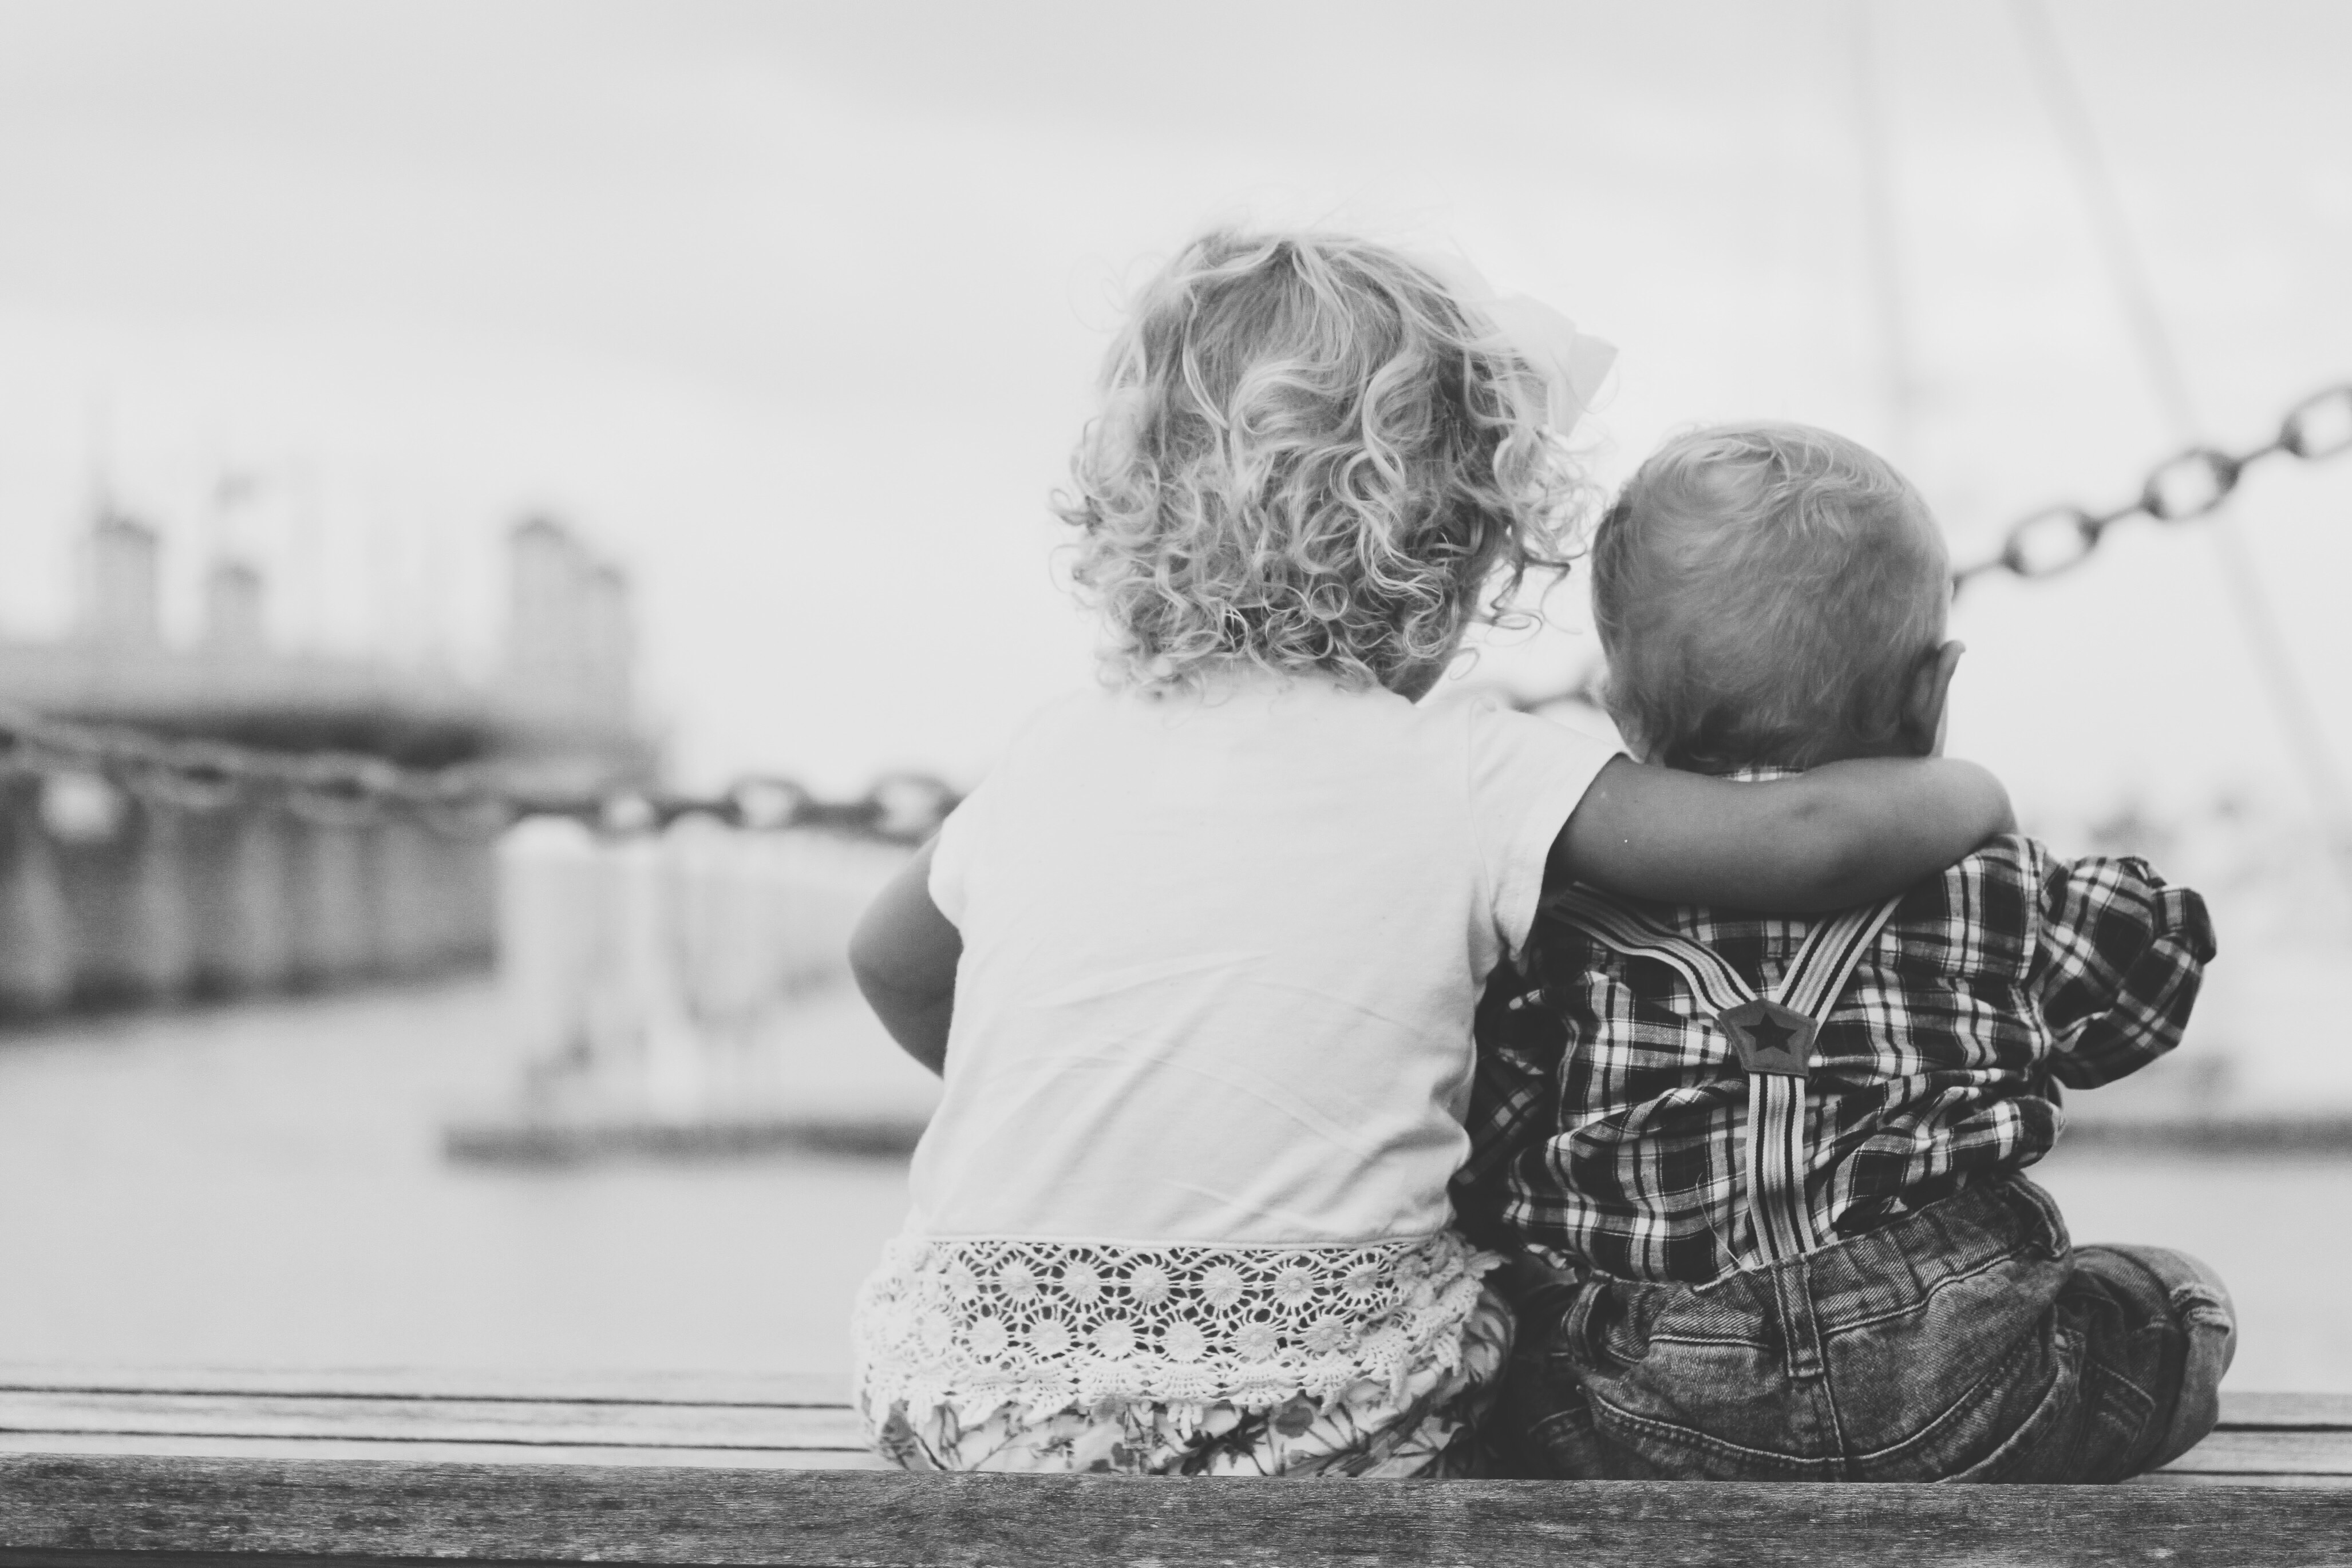 Two toddlers sitting next to each other overlooking an ocean pier